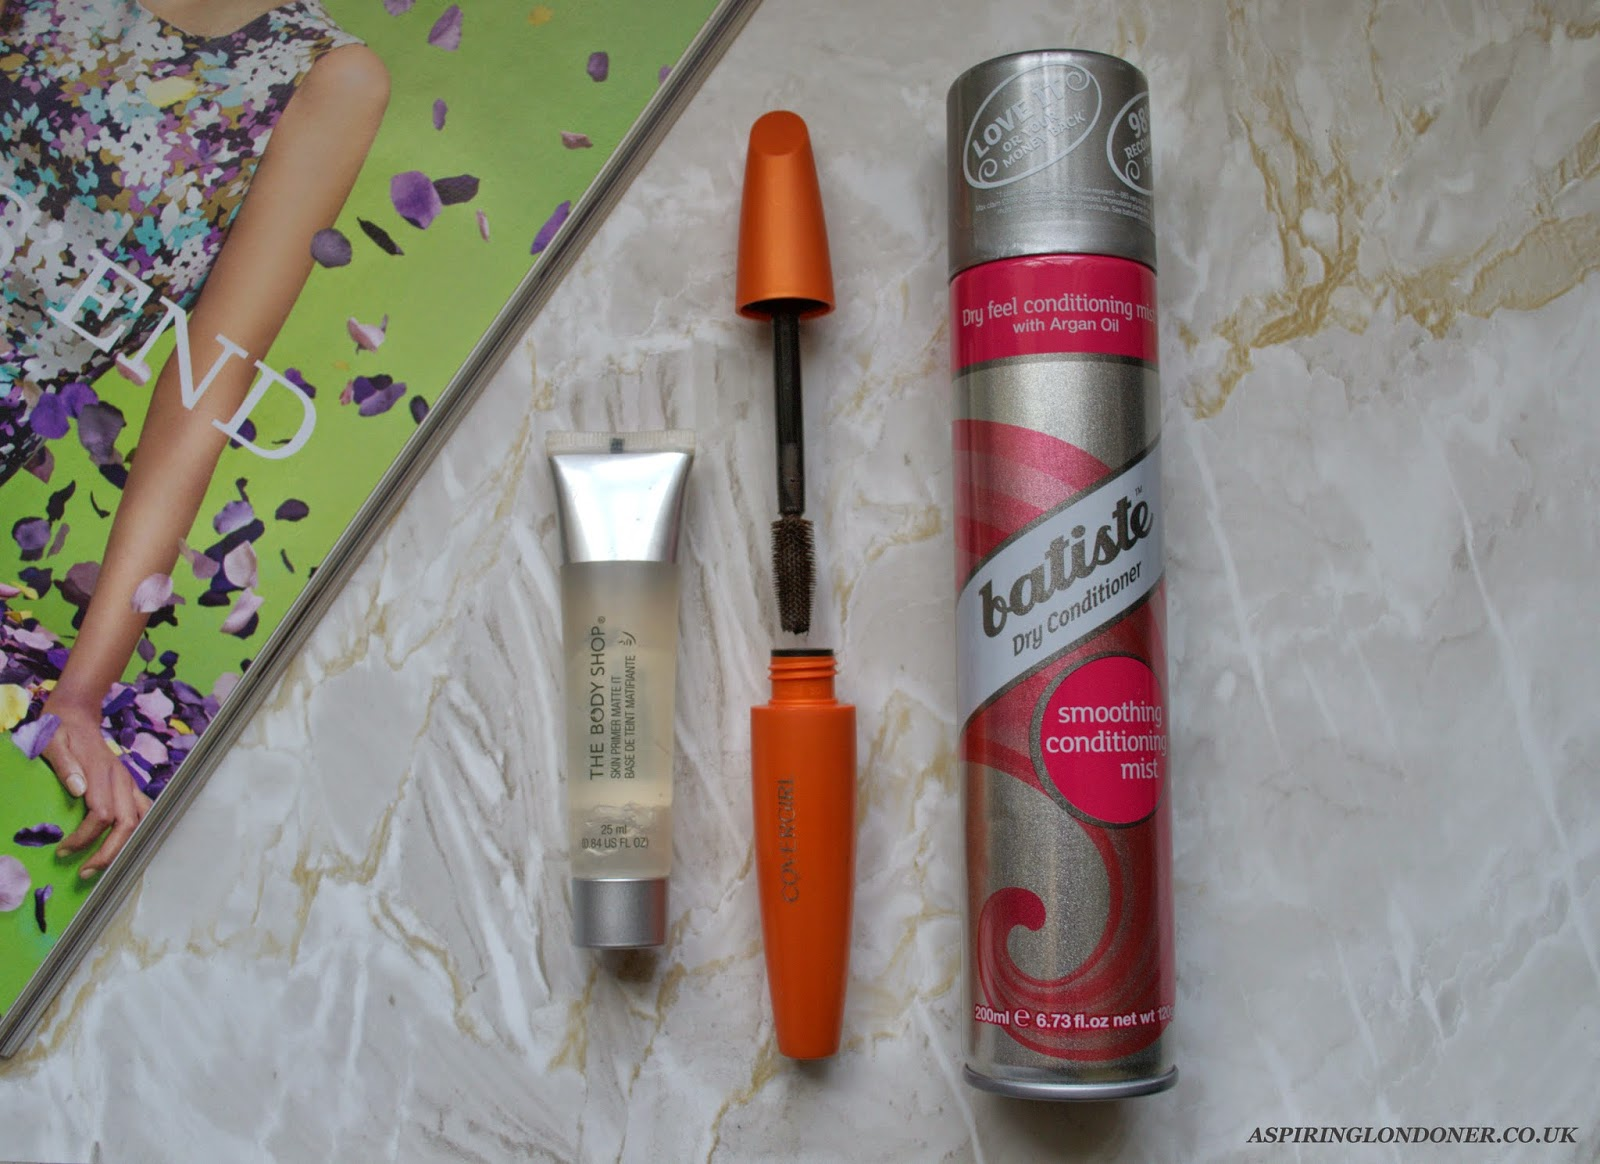 Disappointing Products ft CoverGirl, The Body Shop, Batiste - Aspiring Londoner